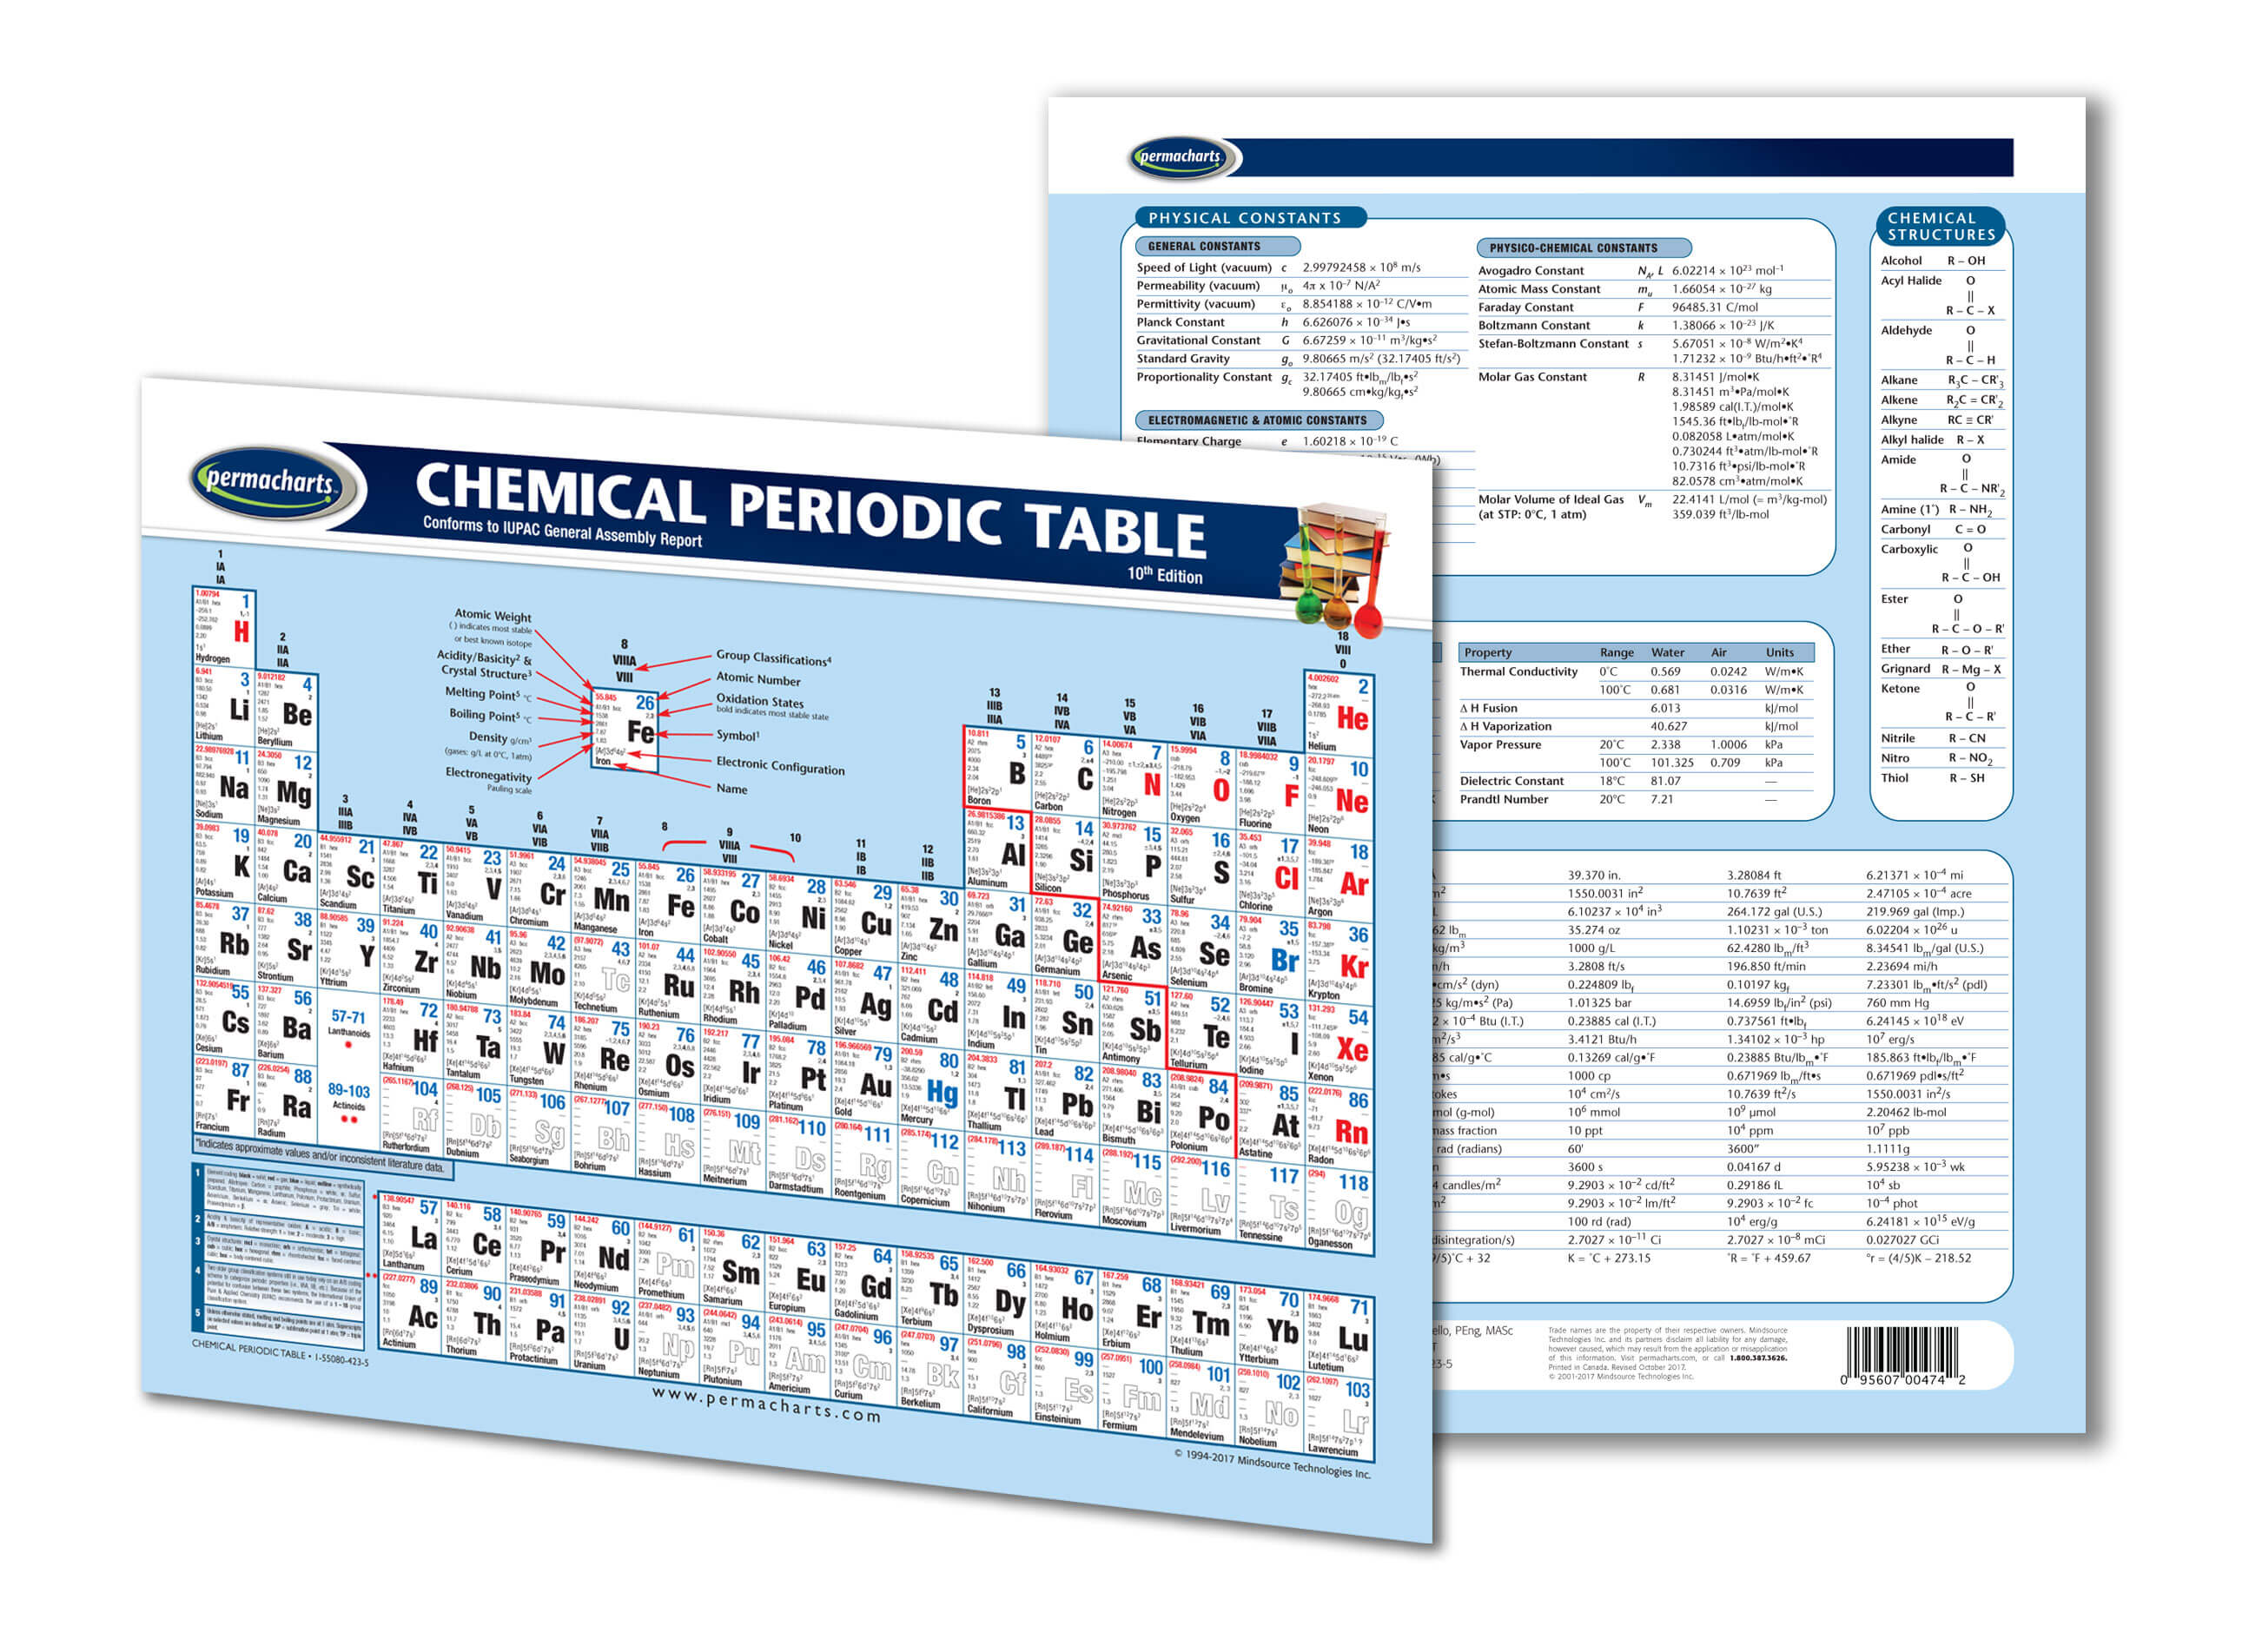 Advance chemistry study guides science quick reference guides chemical periodic table chart chemistry quick reference chart urtaz